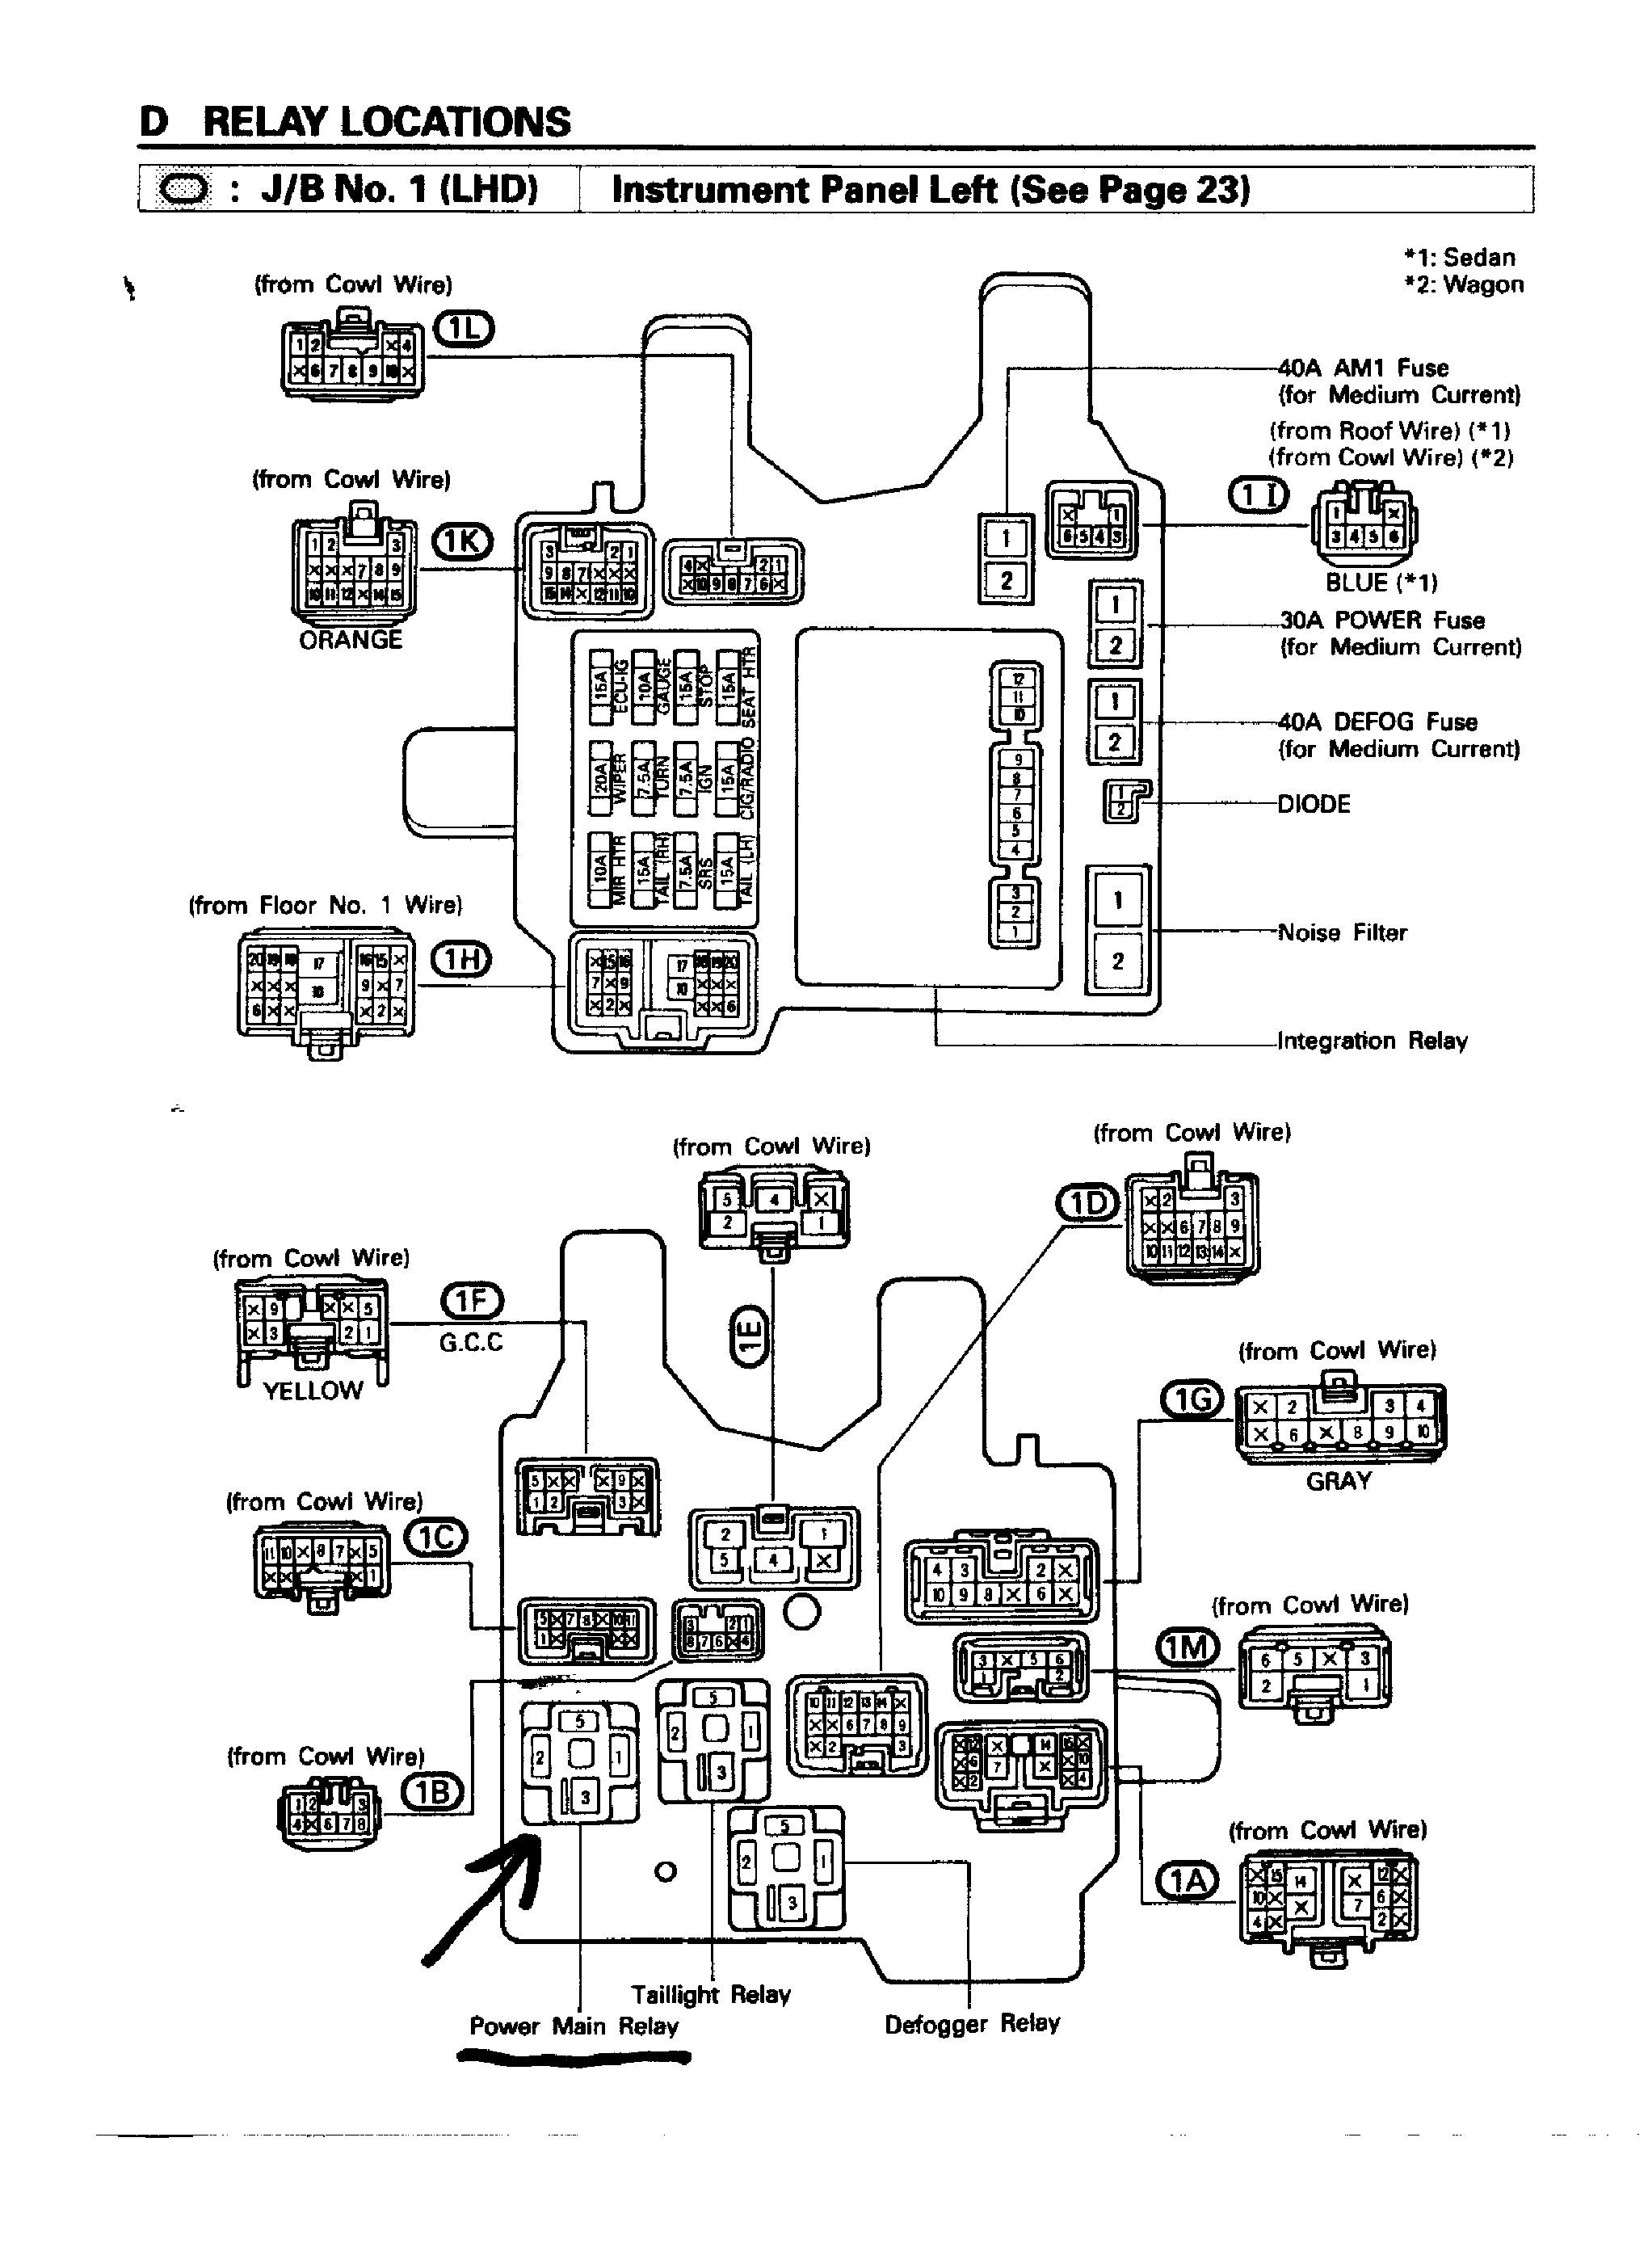 2008 Toyota Tacoma Alternator Wiring Diagram Getting Ready